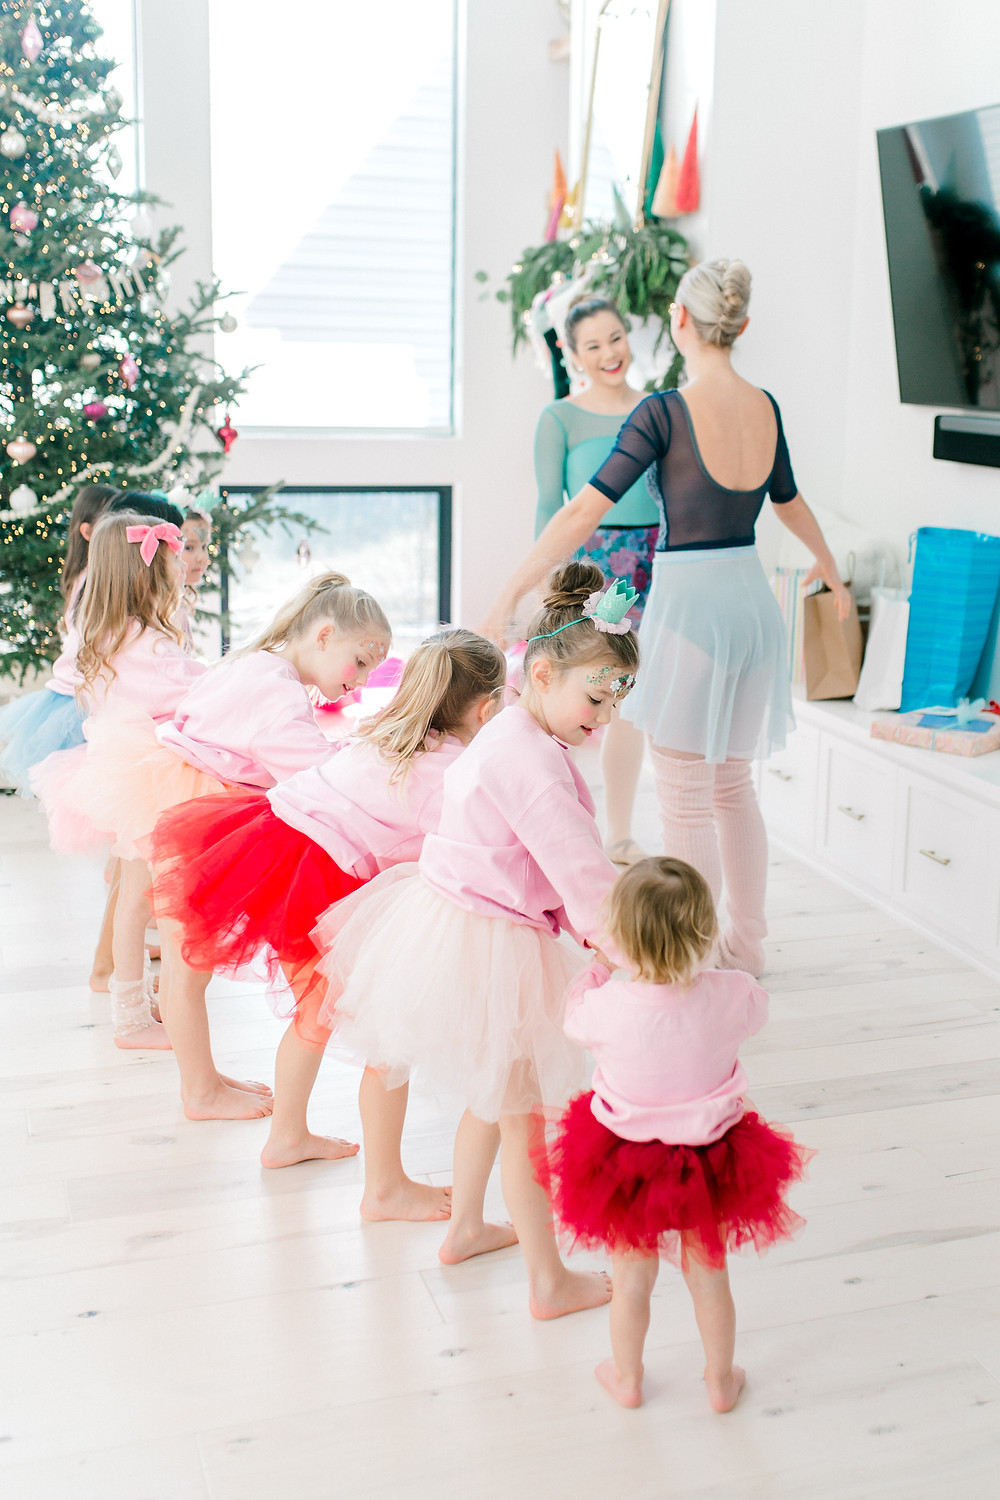 A group of girls at a birthday party are dressed in white, red, and pink tutus with pink sweaters dance with two adult ballerinas.